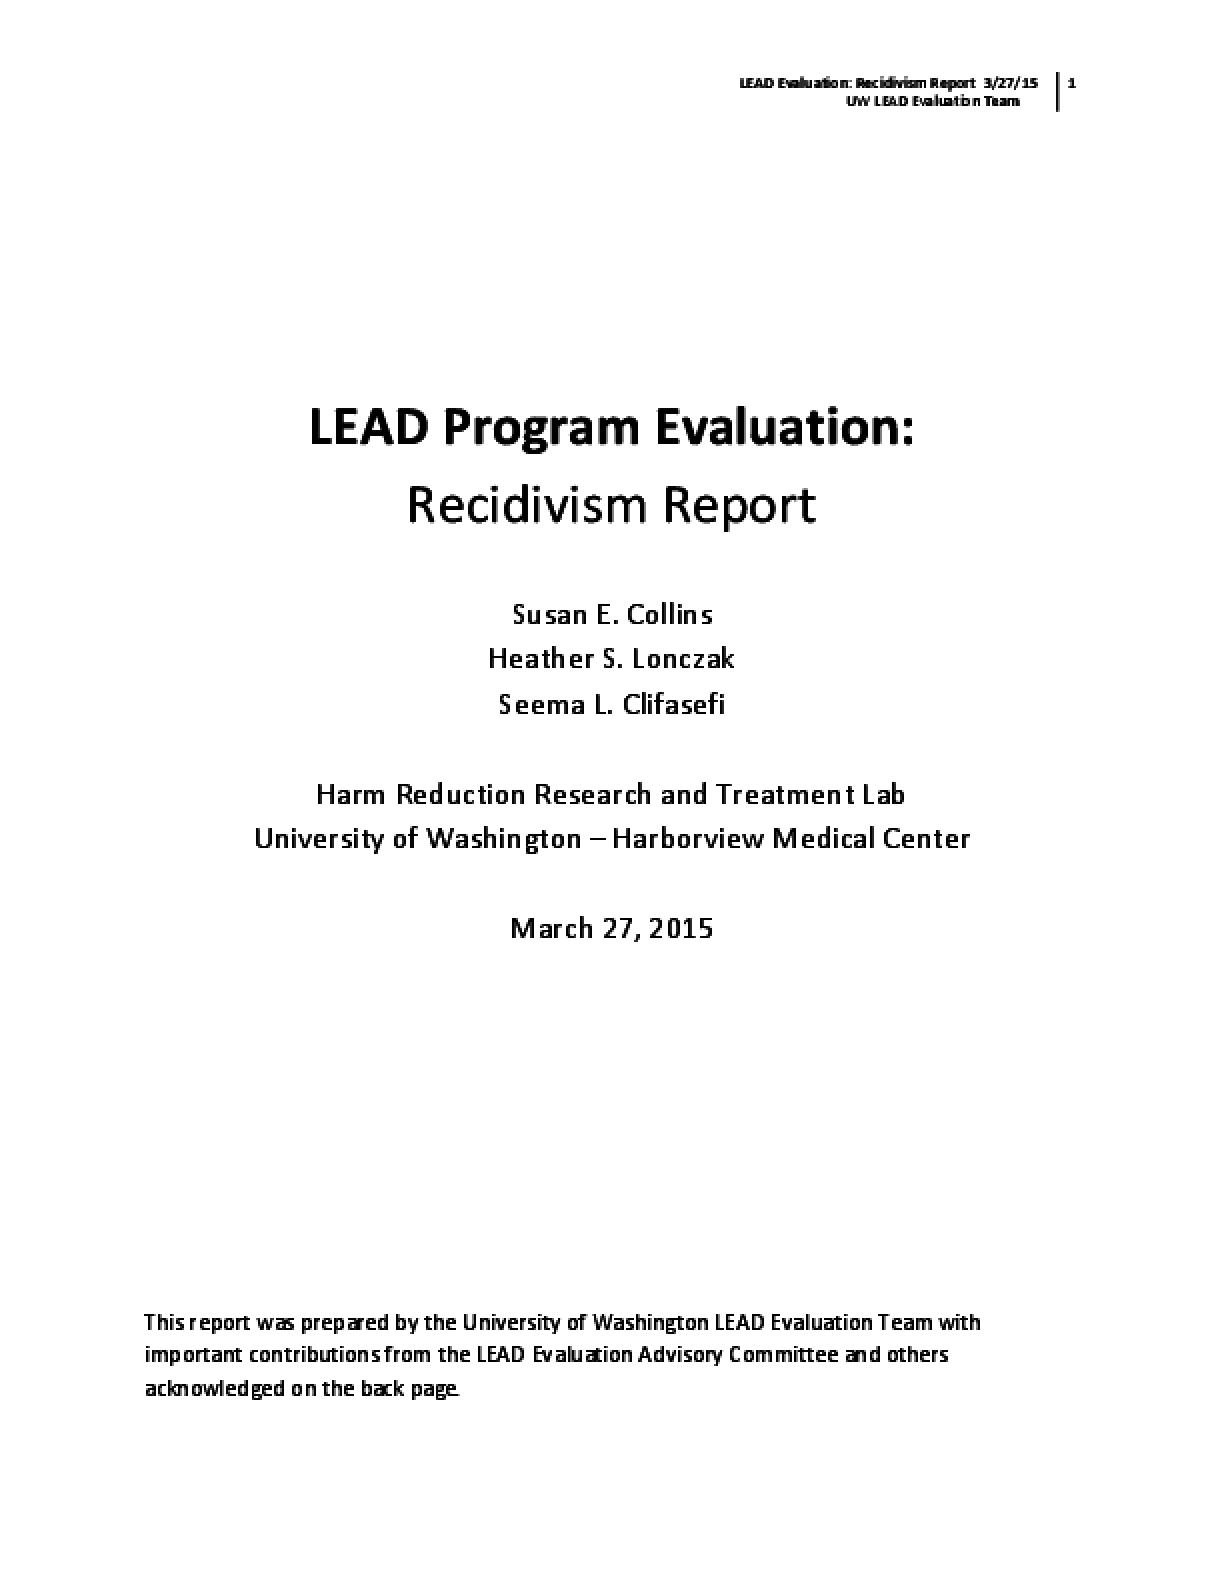 LEAD Program Evaluation: Recidivism Report